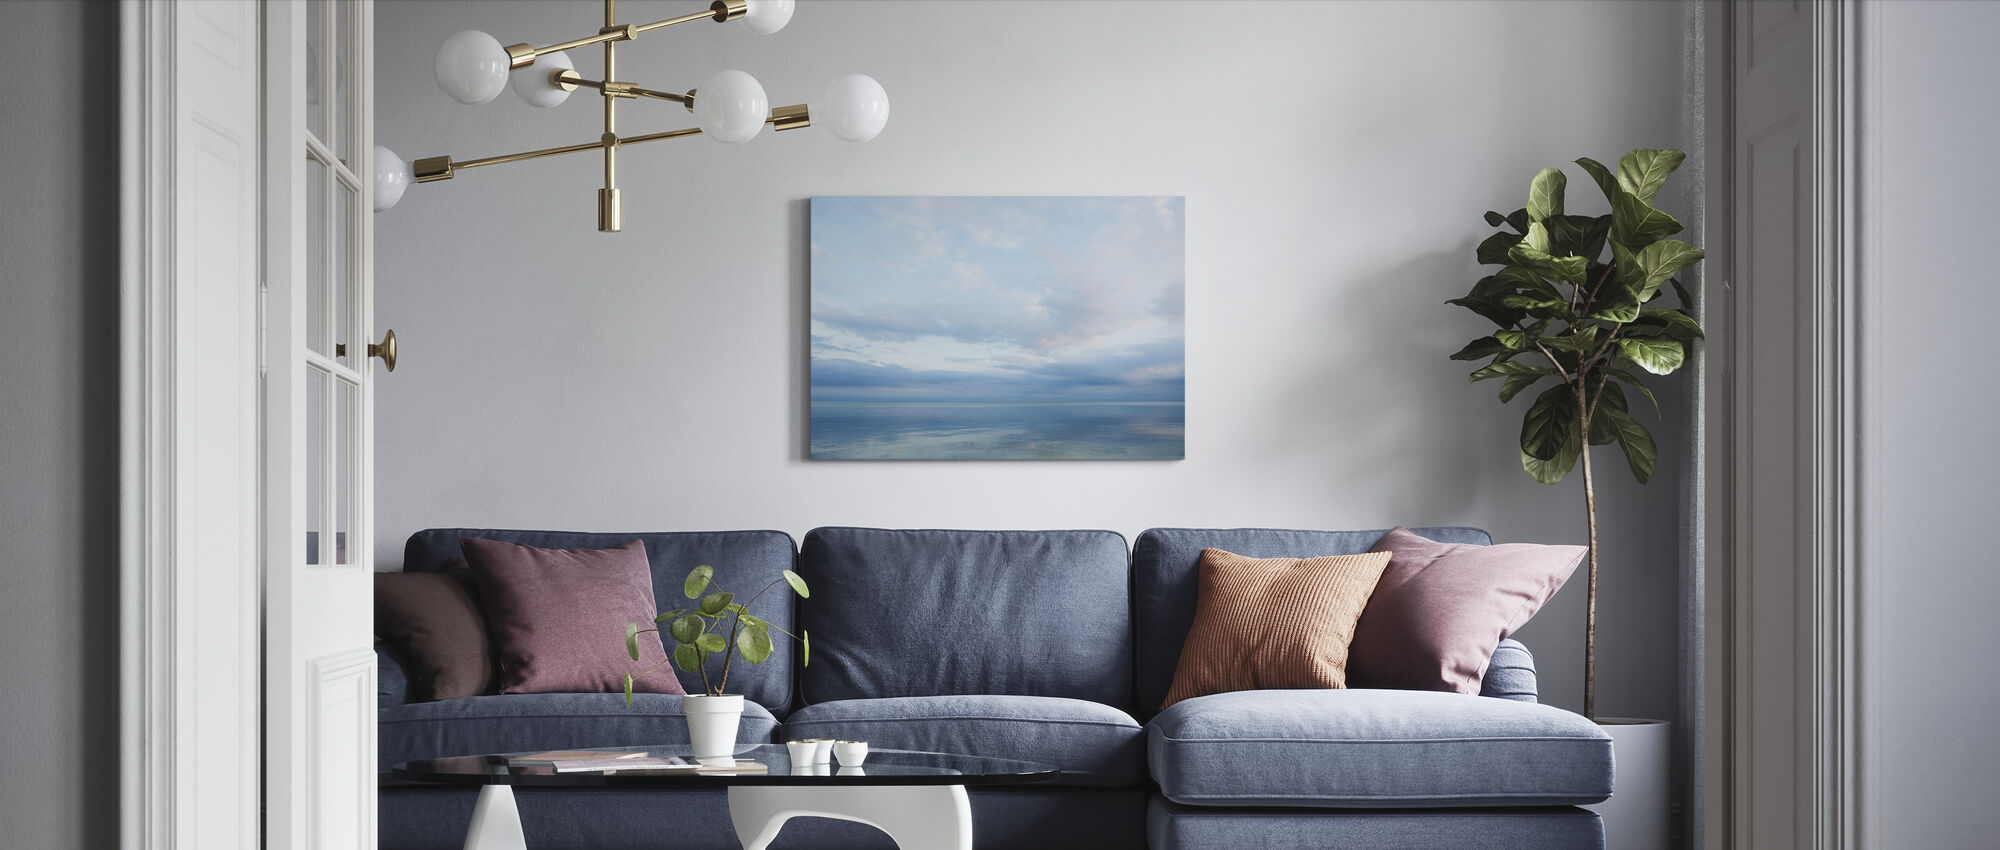 Islamorada in Florida Keys, USA - Canvas print - Living Room